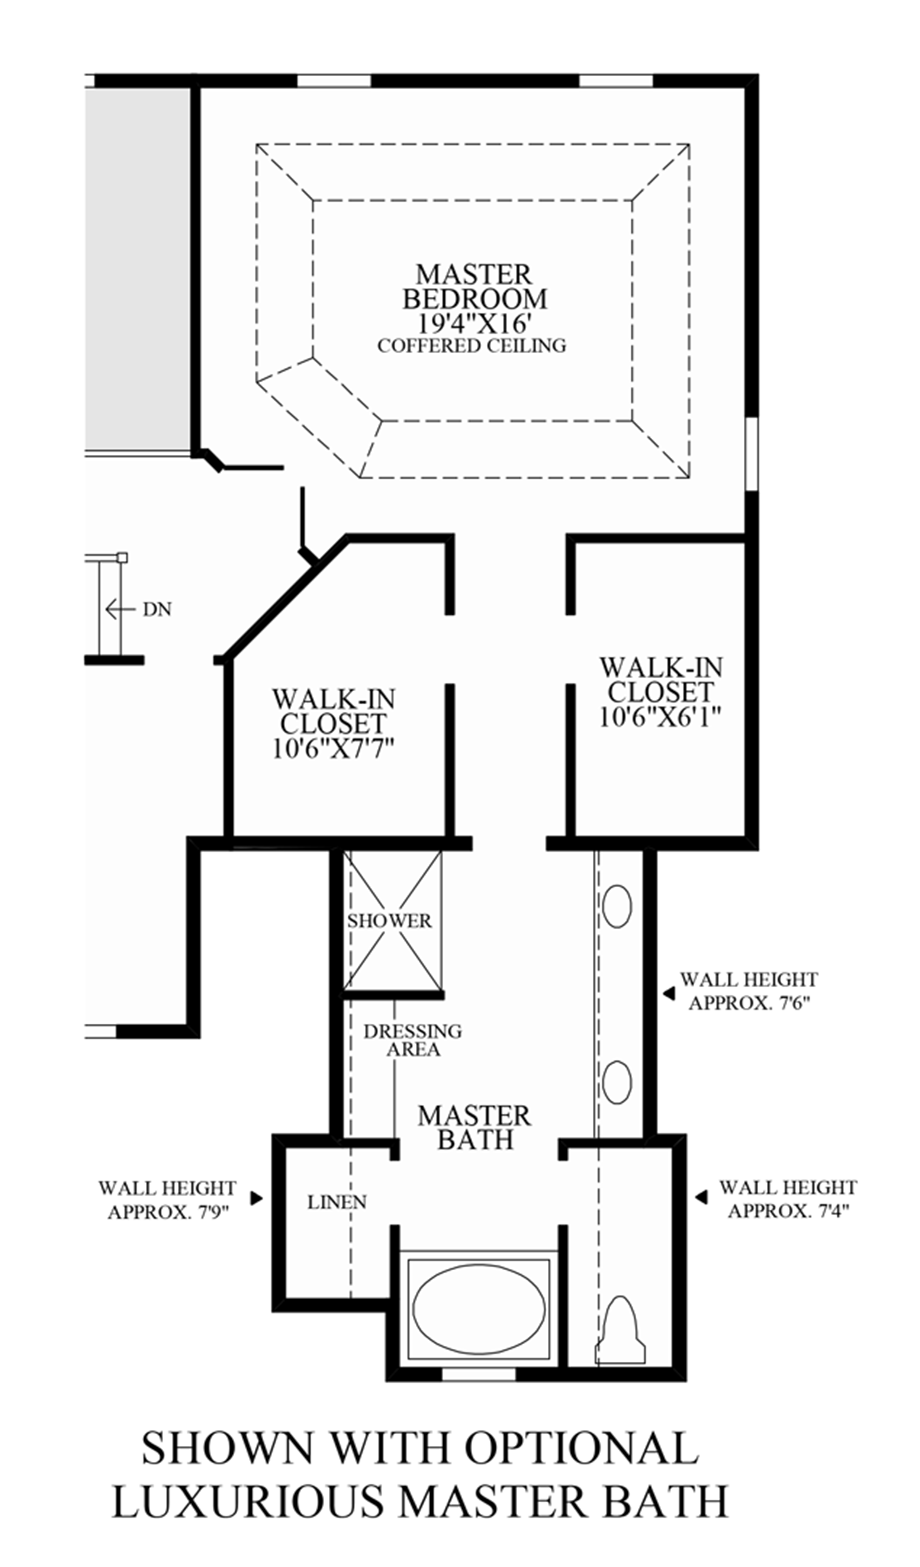 High pointe at st georges carolina collection the Large master bath plans